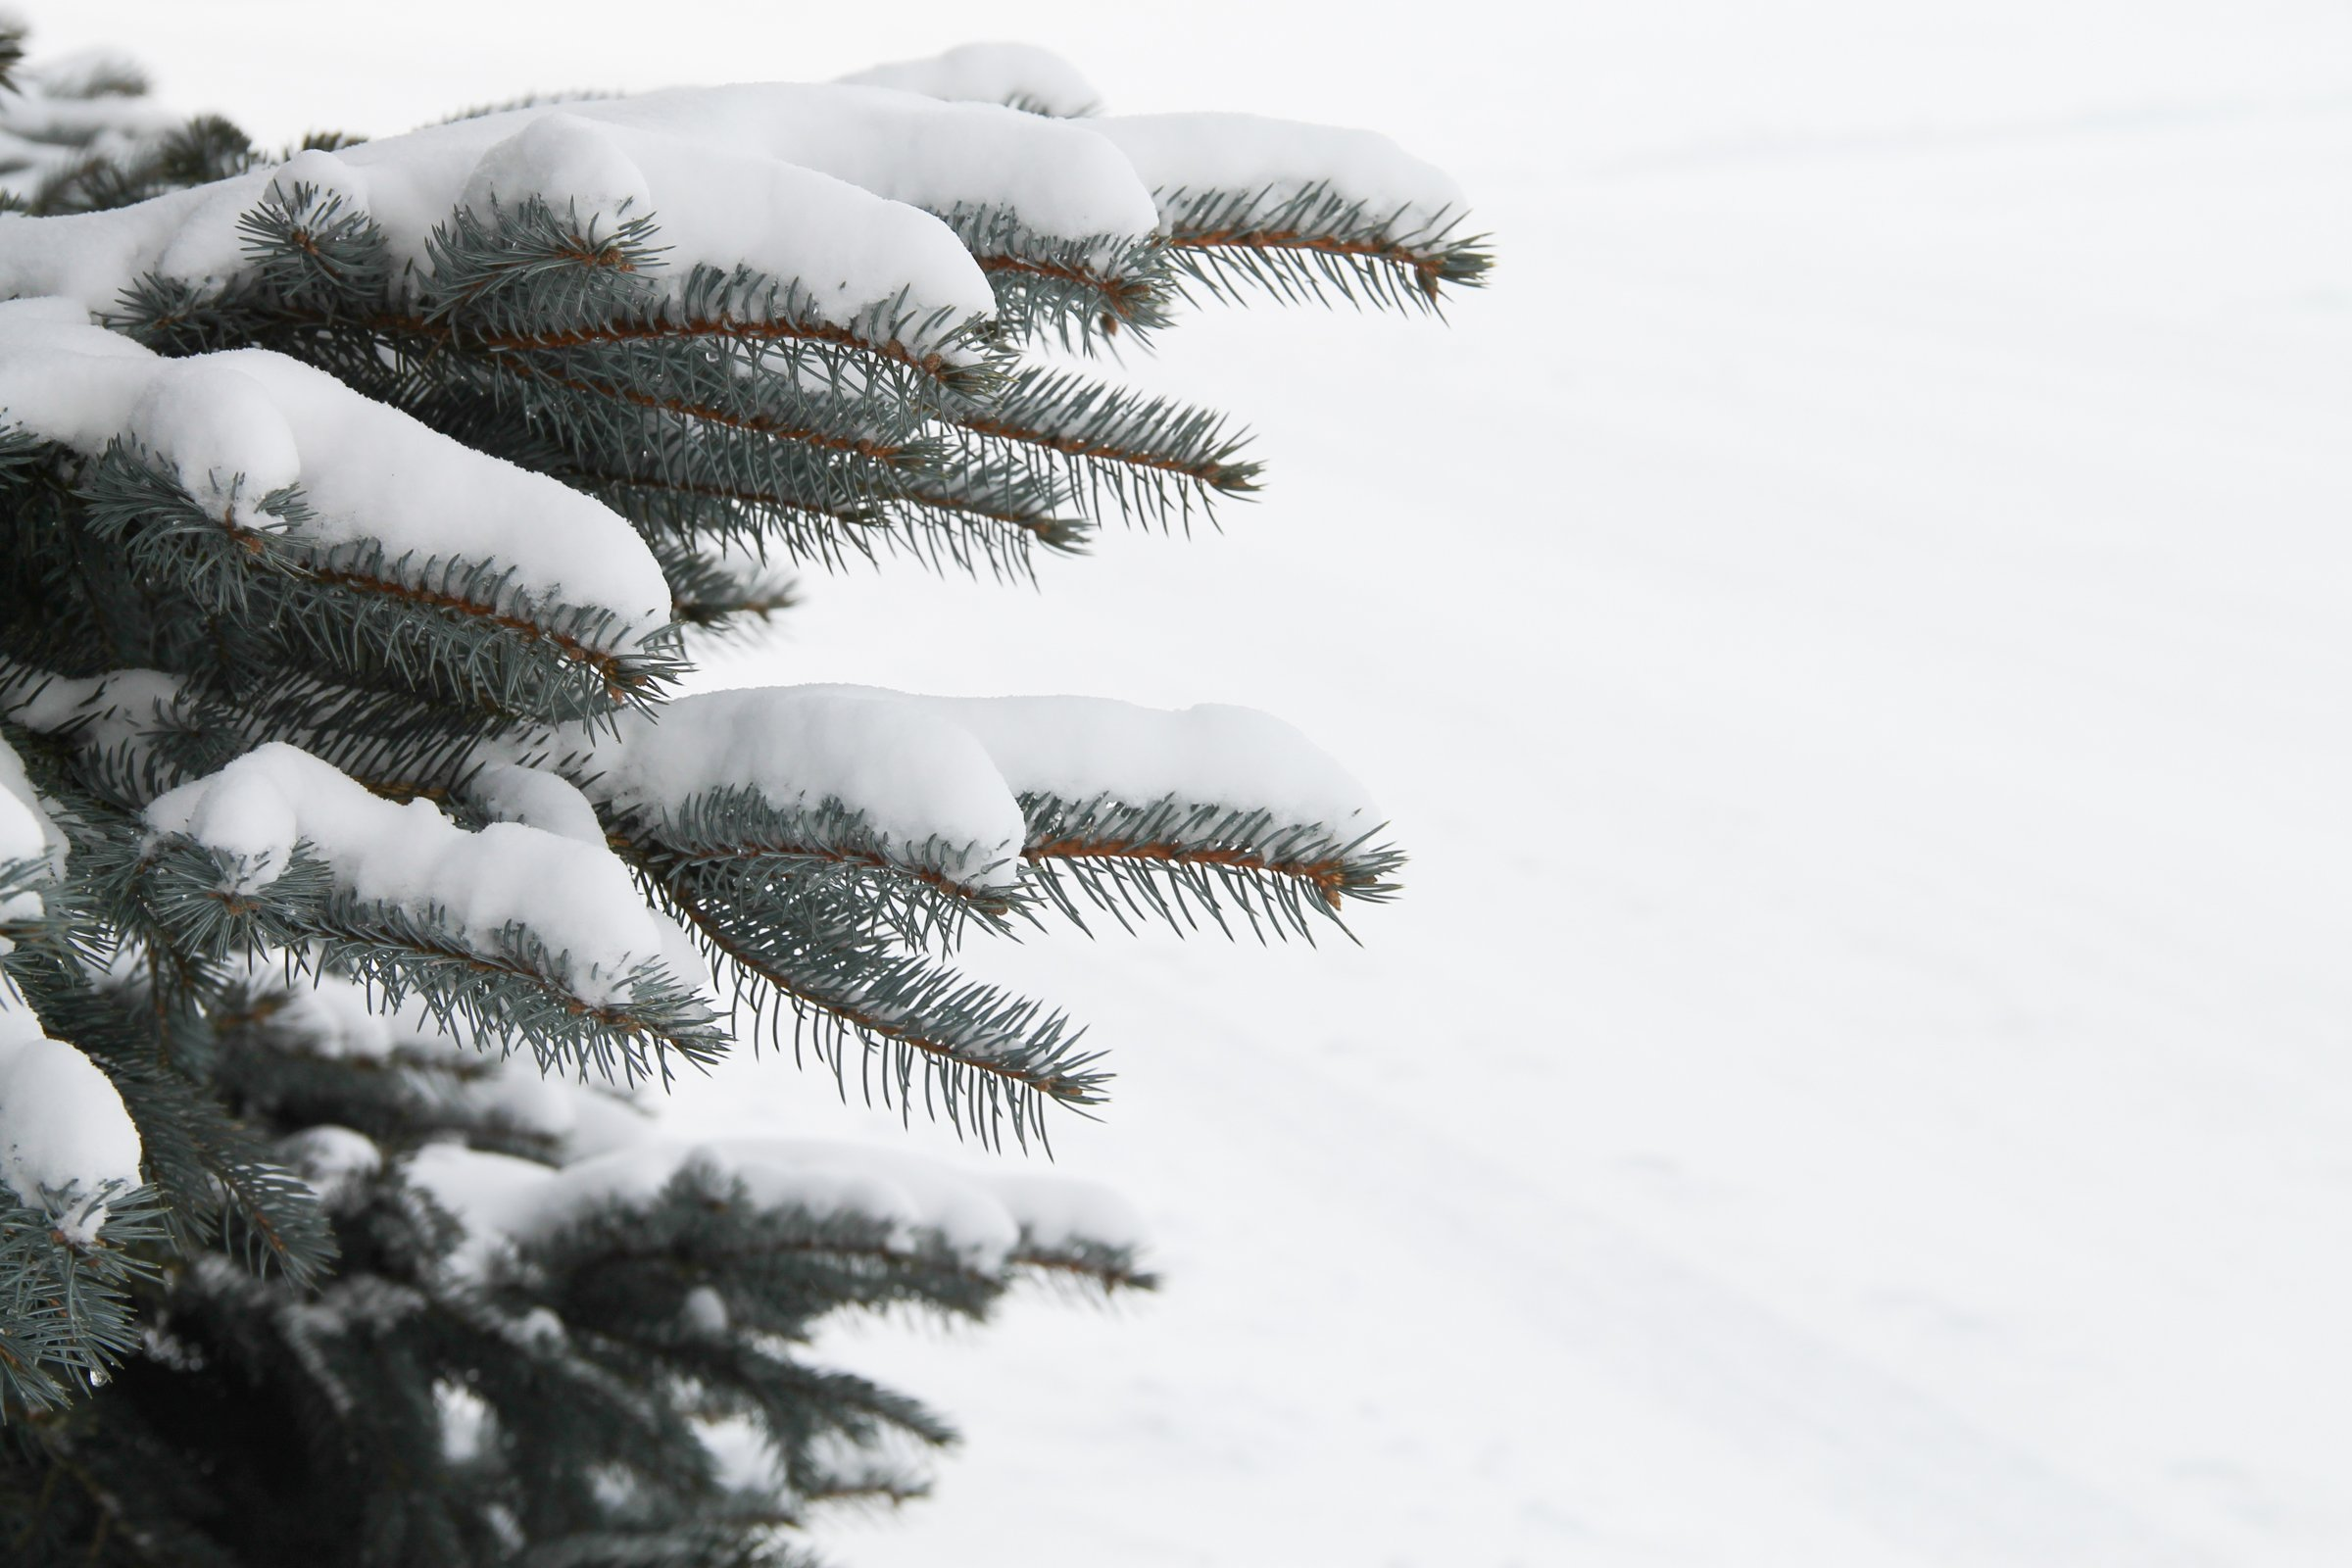 Free stock photo of new snow on pine tree branches - Images of pine trees in snow ...